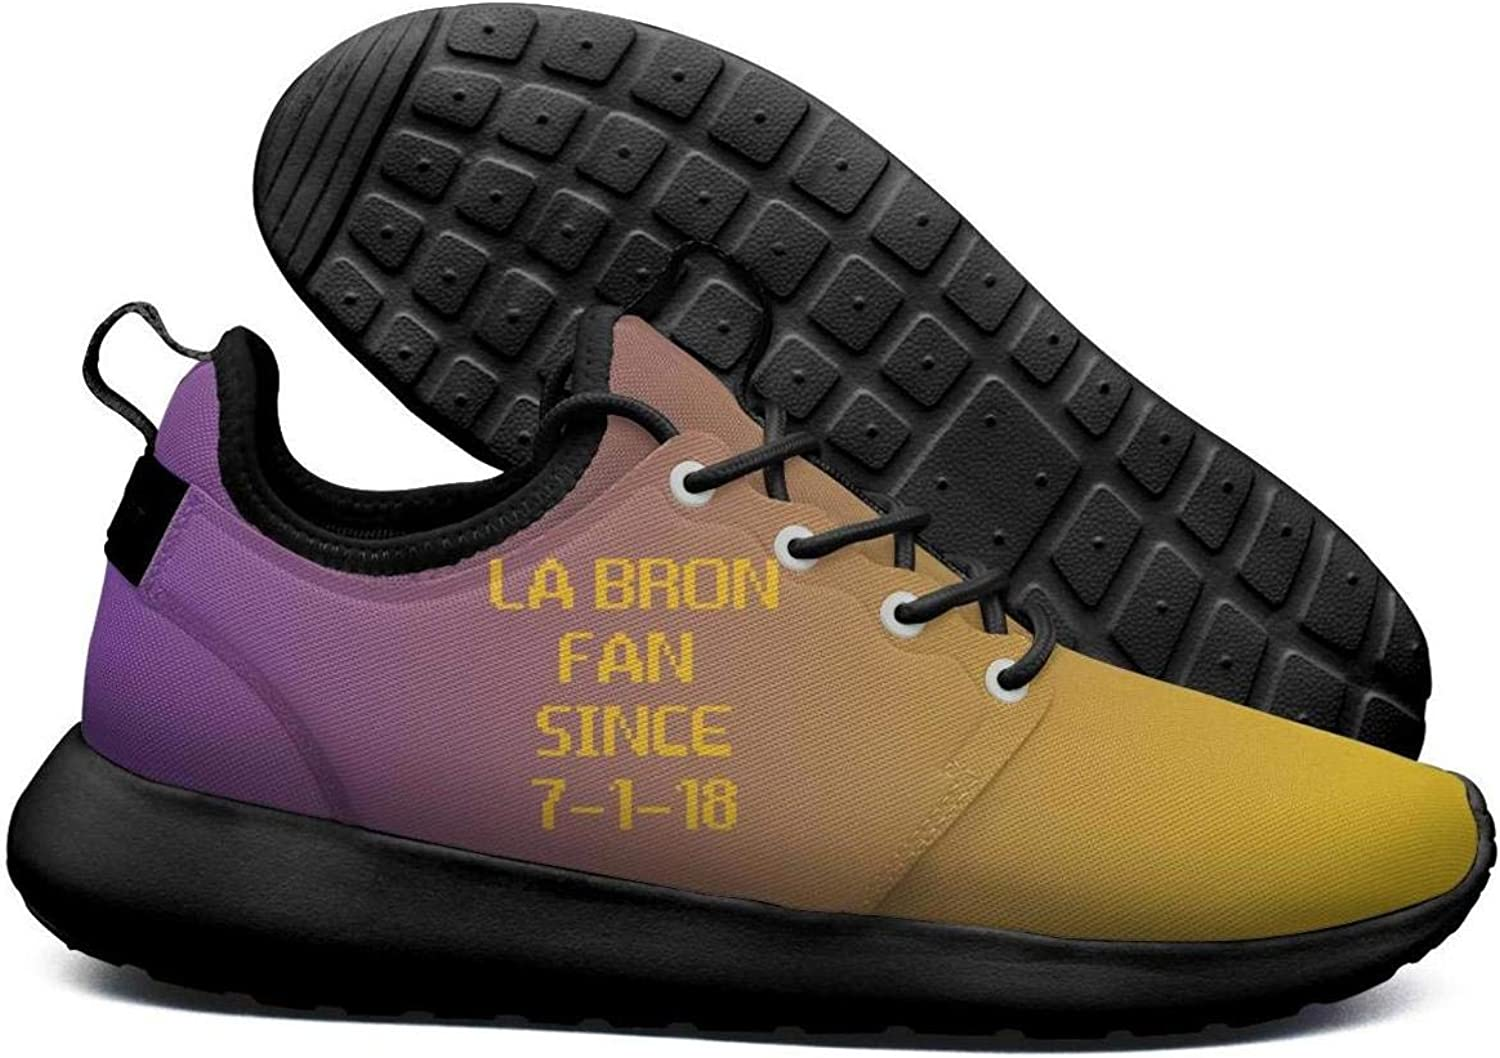 Womens Roshe Two Lightweight LABRON_Fan Since 7-7-18 Basketball Casual Fashion Sneakers mesh shoes